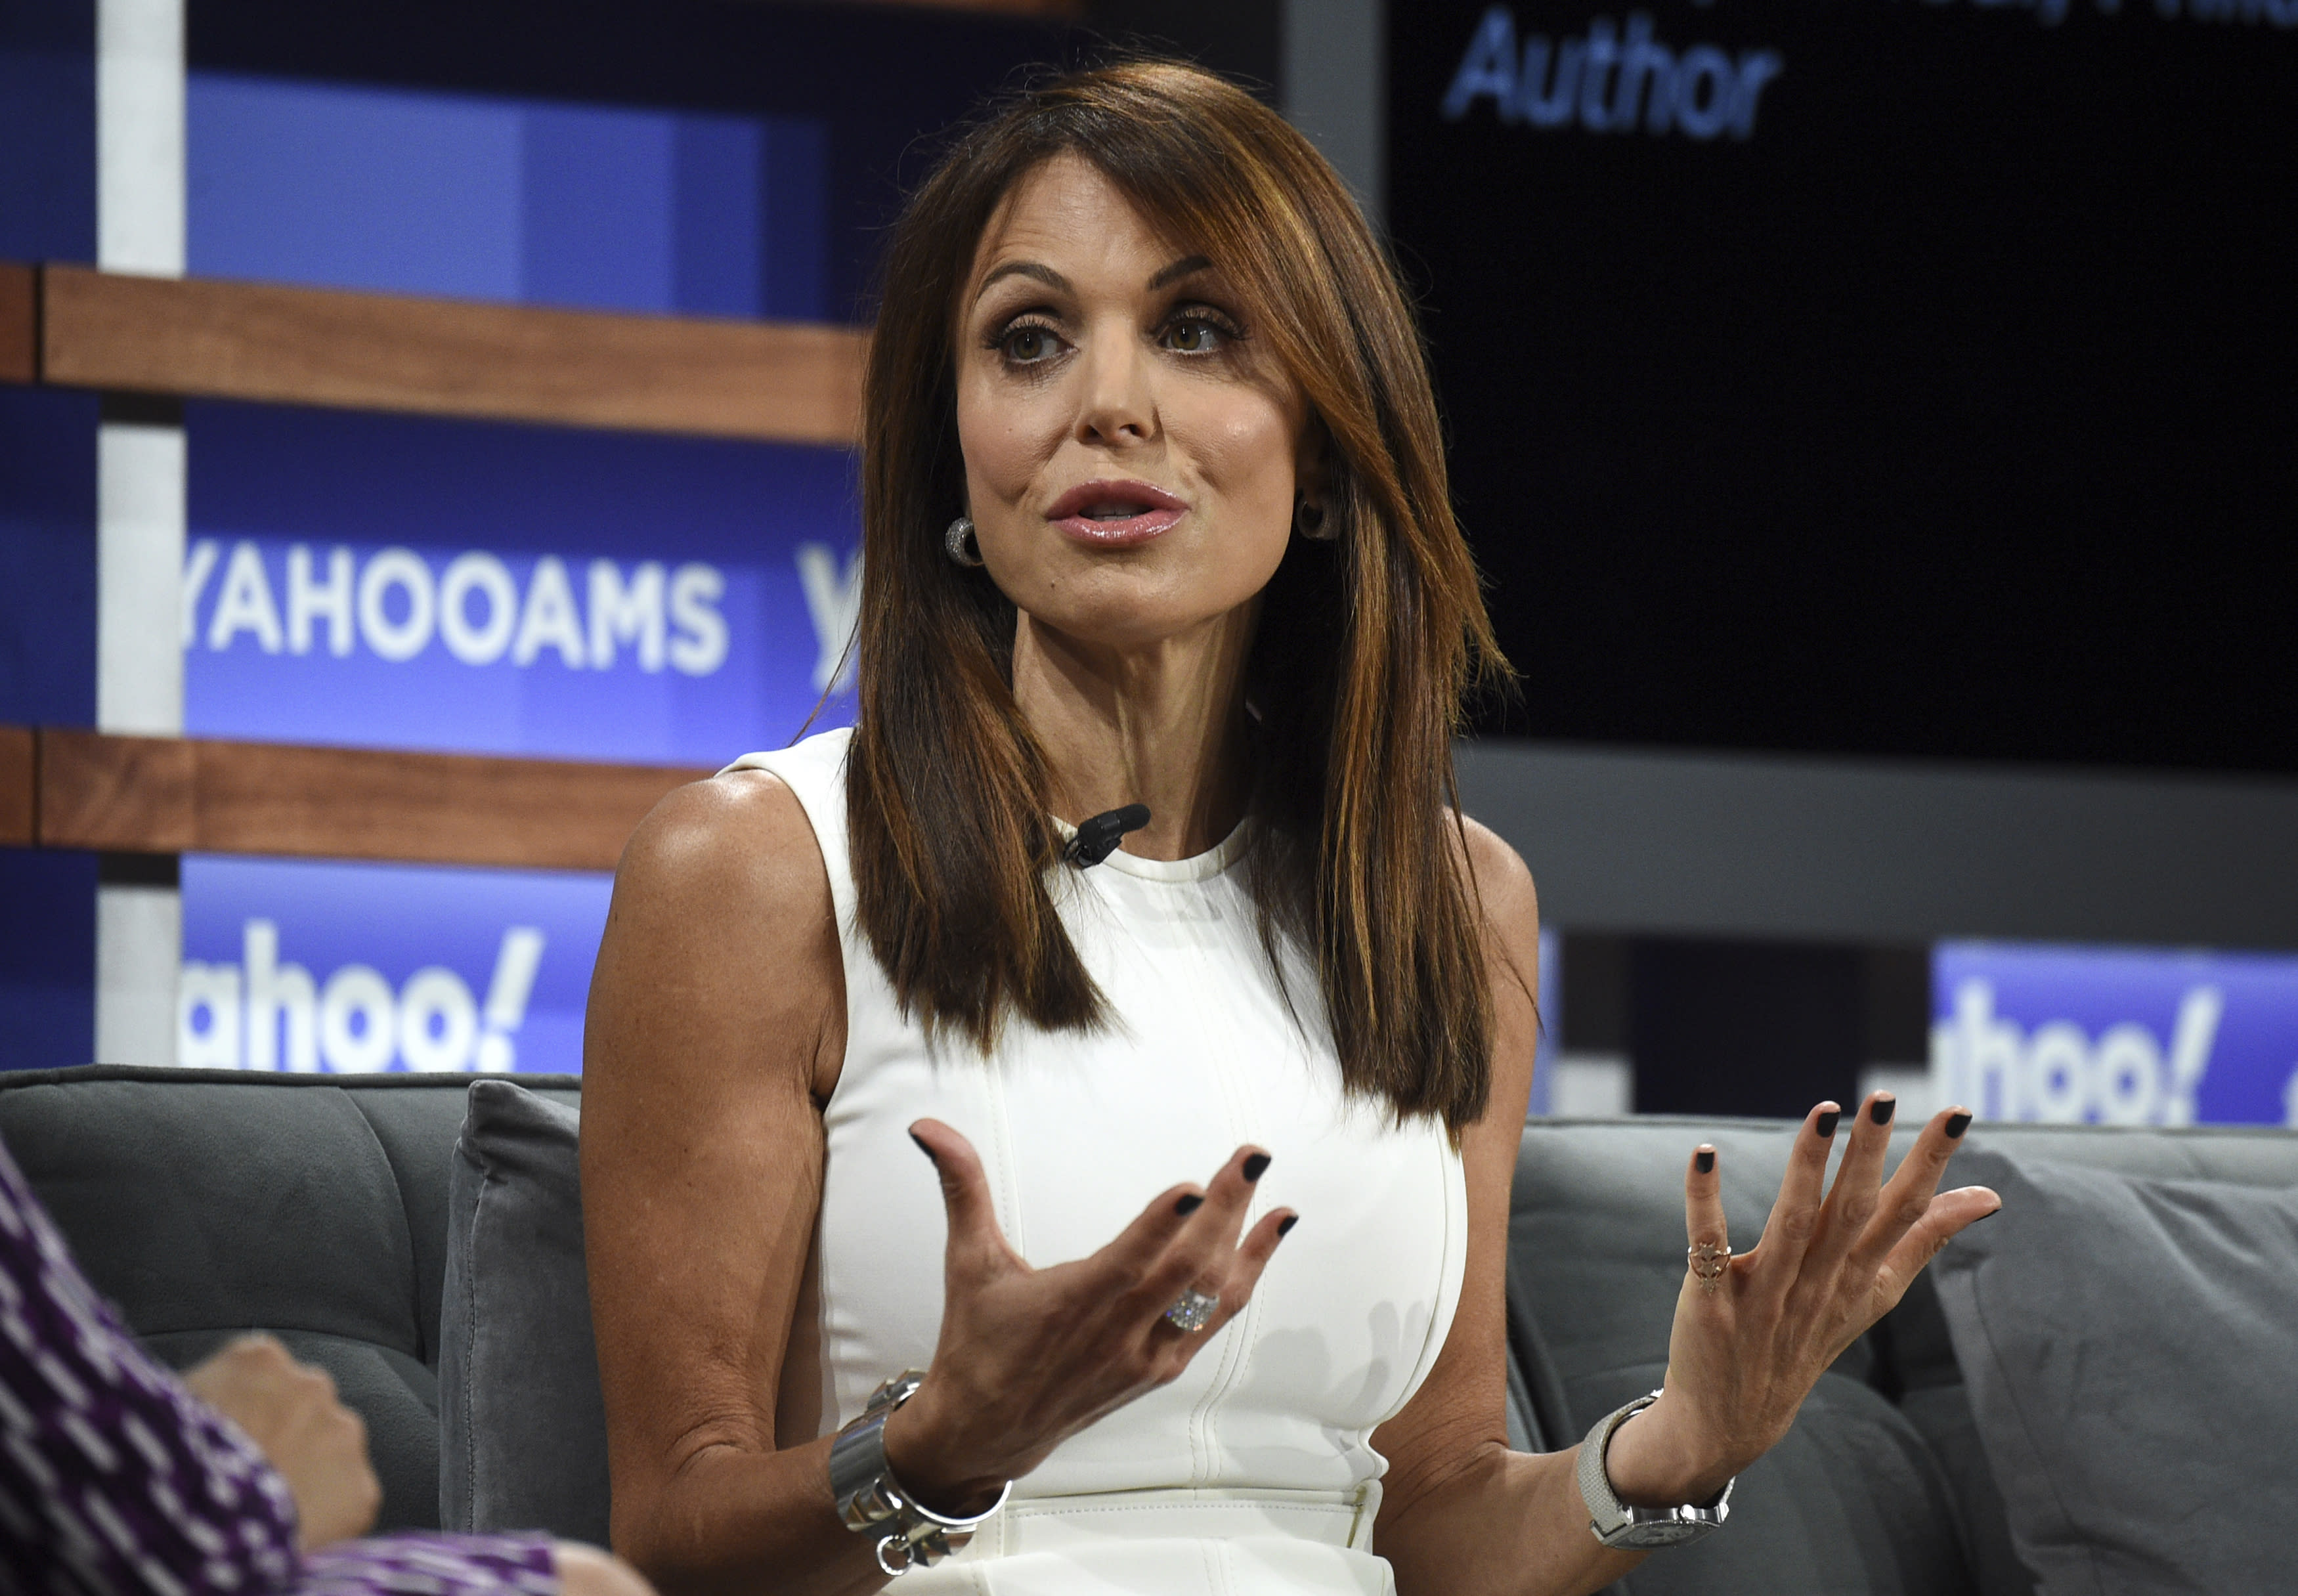 Bethenny Frankel on real estate: 'Don't worry about taking your losses on a sell'